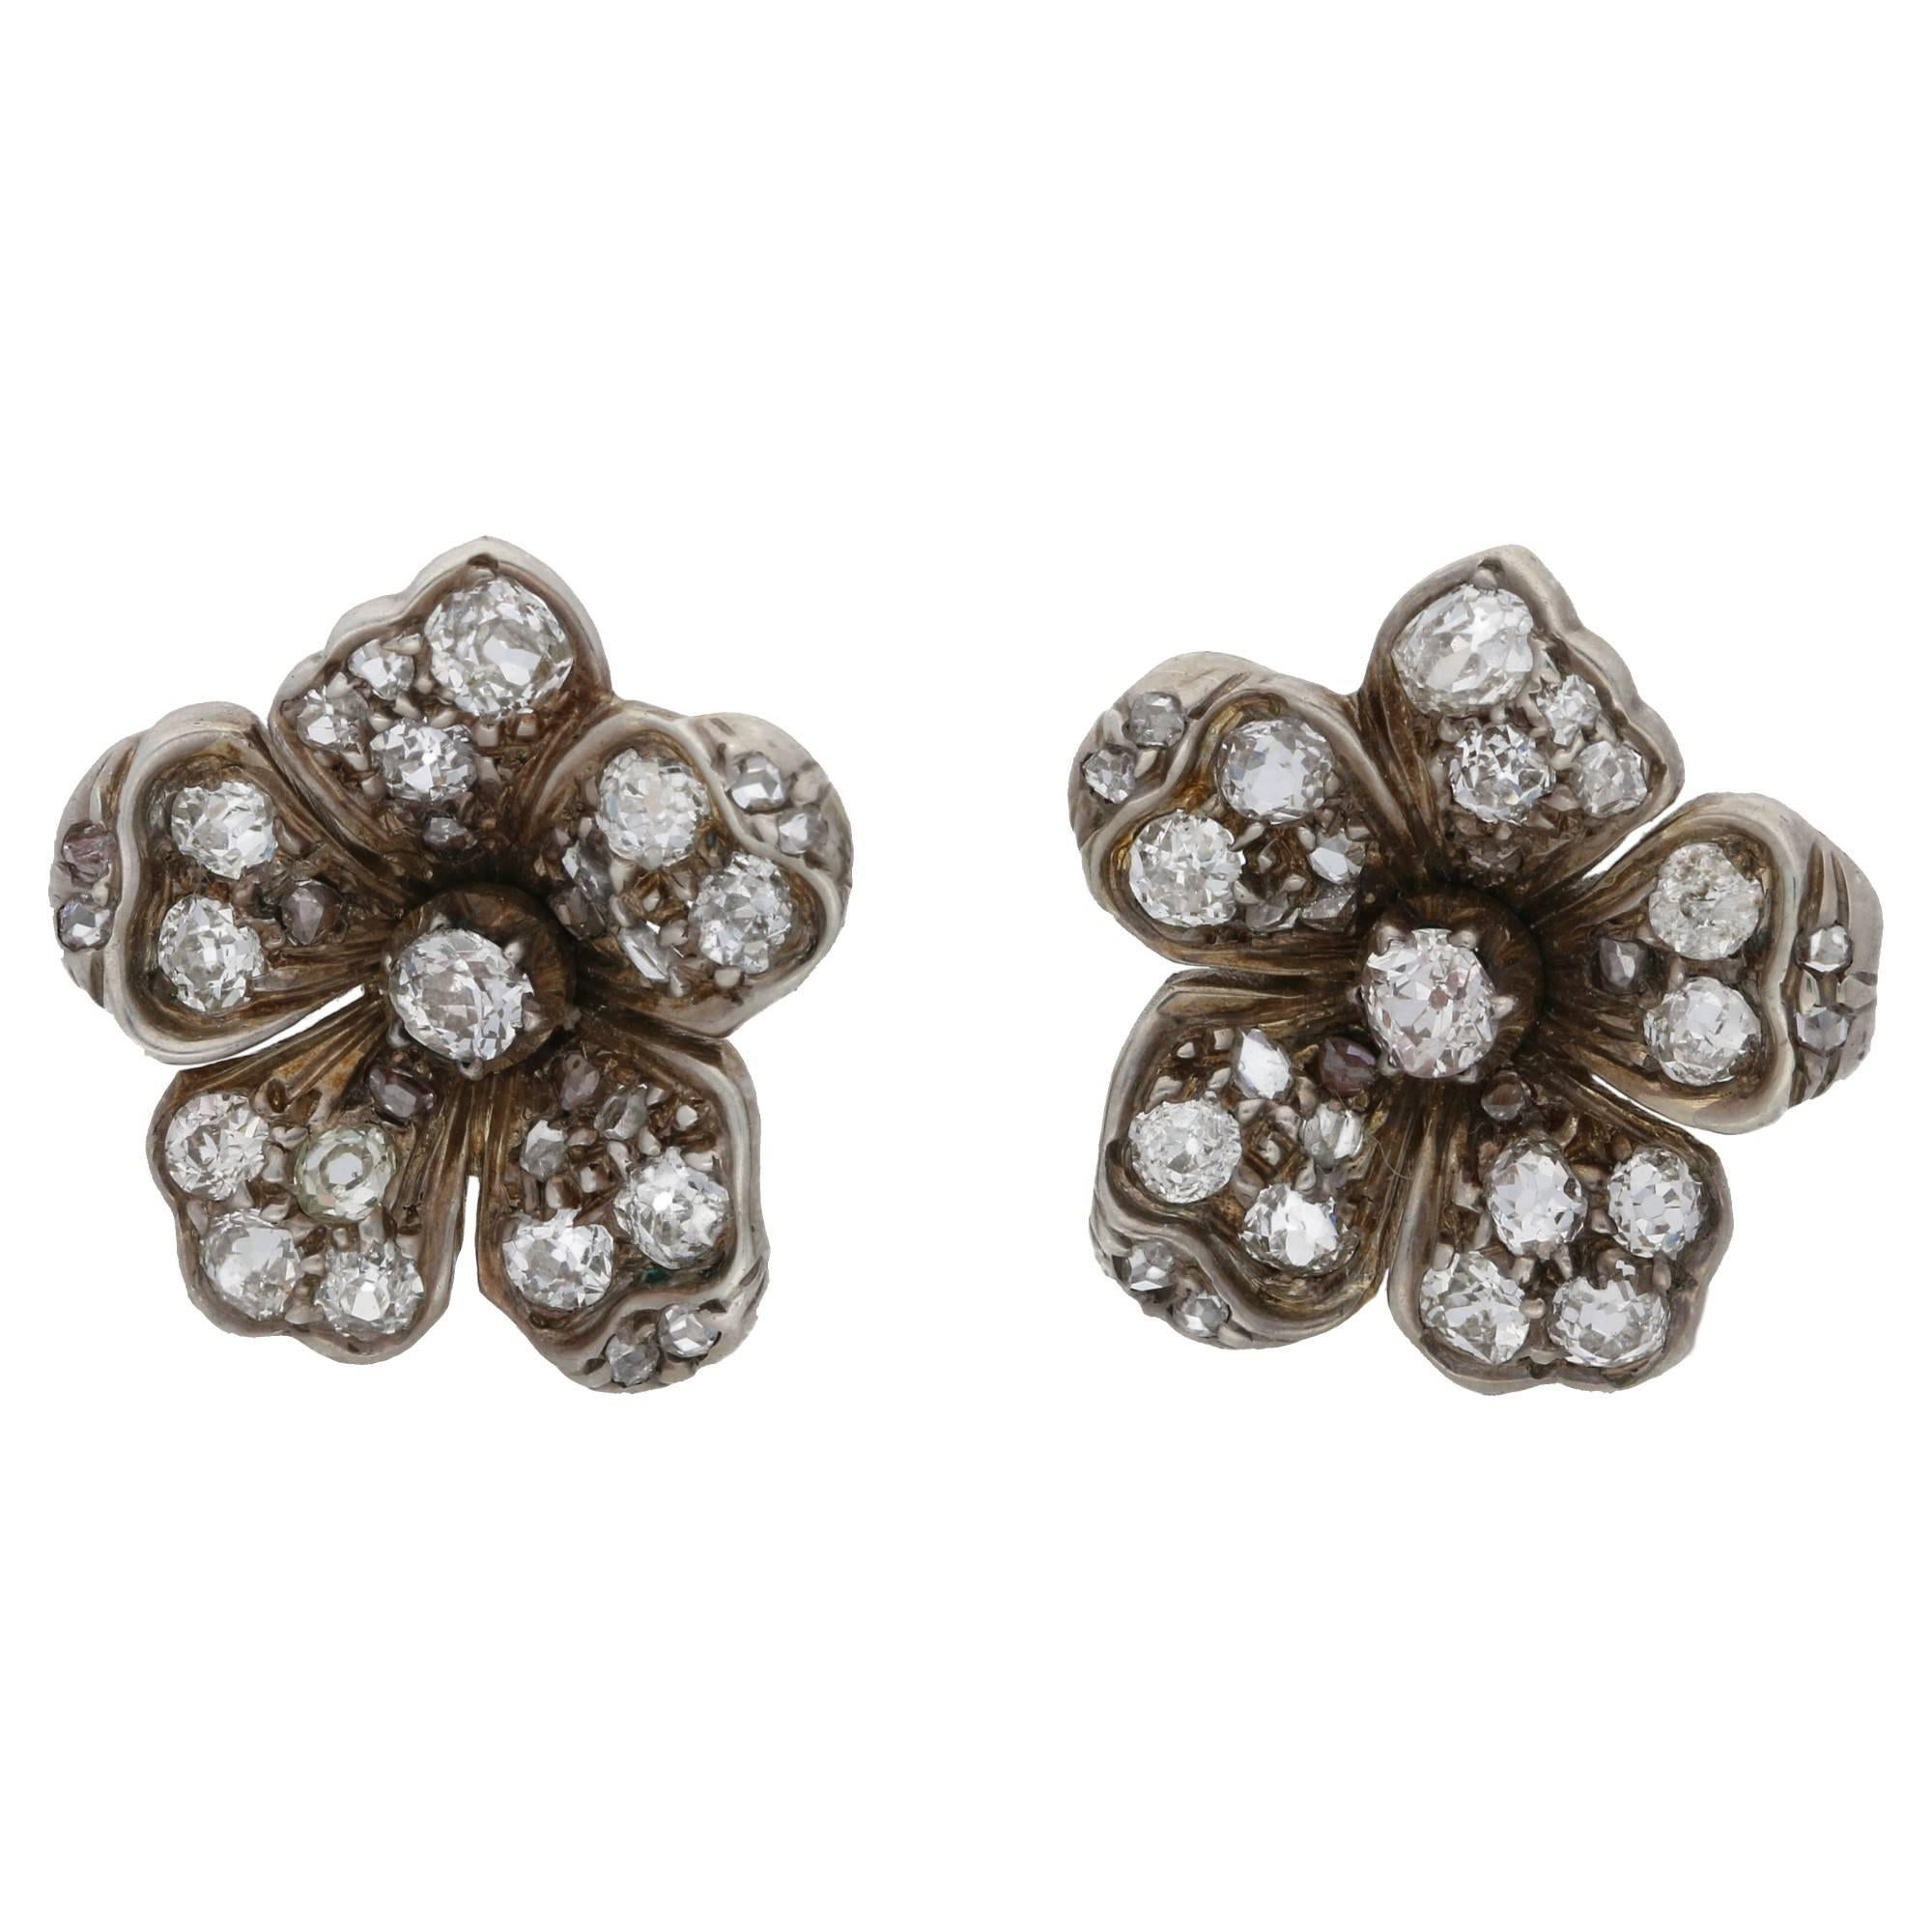 Victorian Diamond Floral Cluster Stud Earrings Set in Silver on Gold